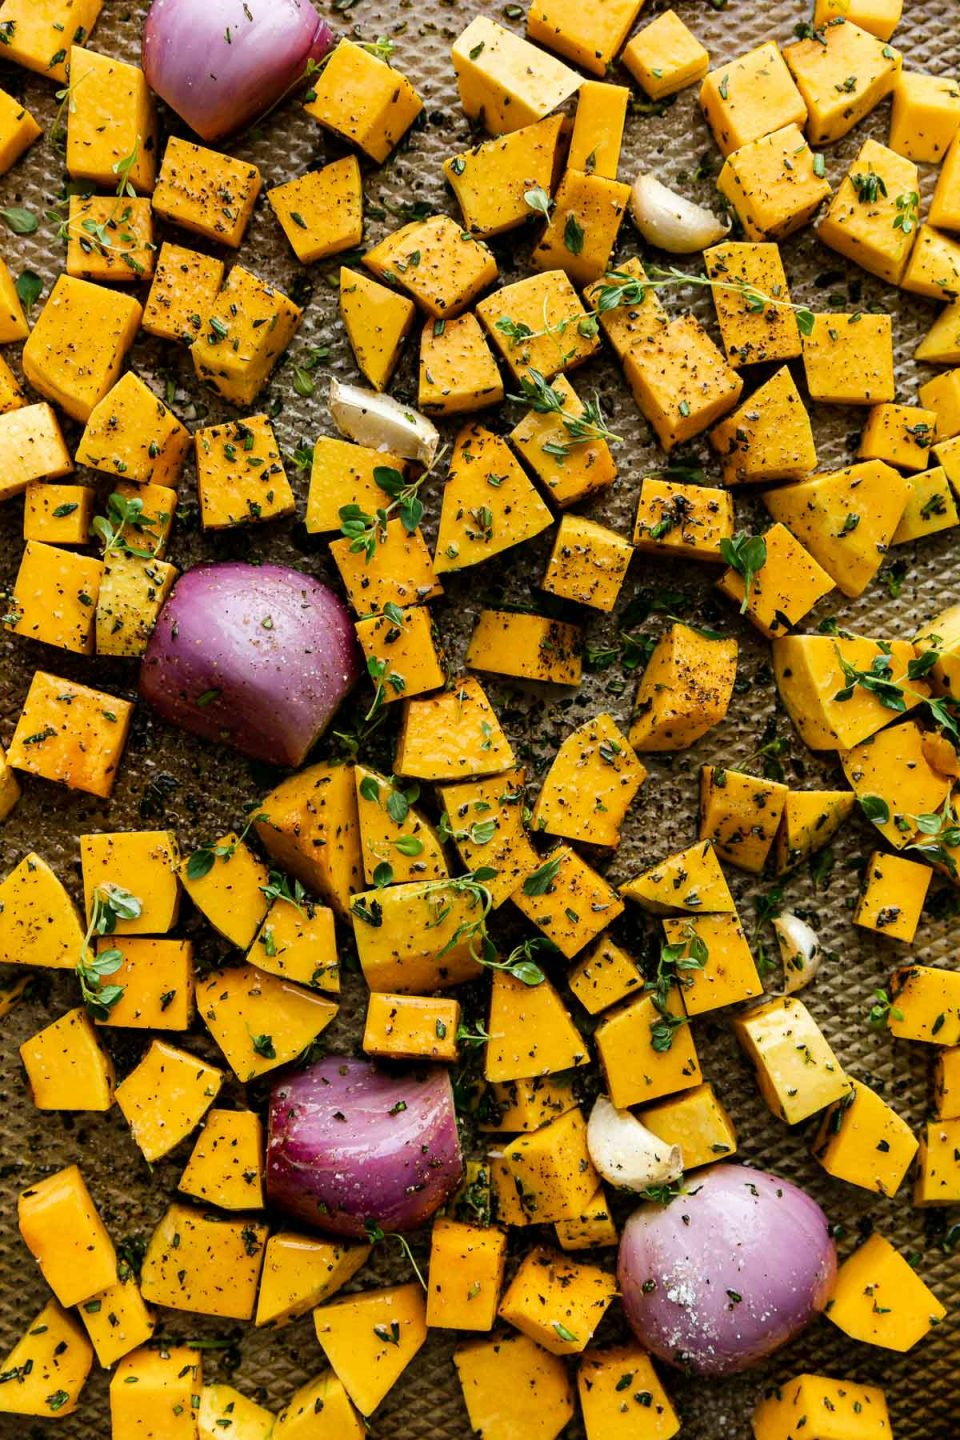 Cubed butternut squash, shallots, & garlic seasoned with olive oil & fresh herbs on a baking sheet before roasting.